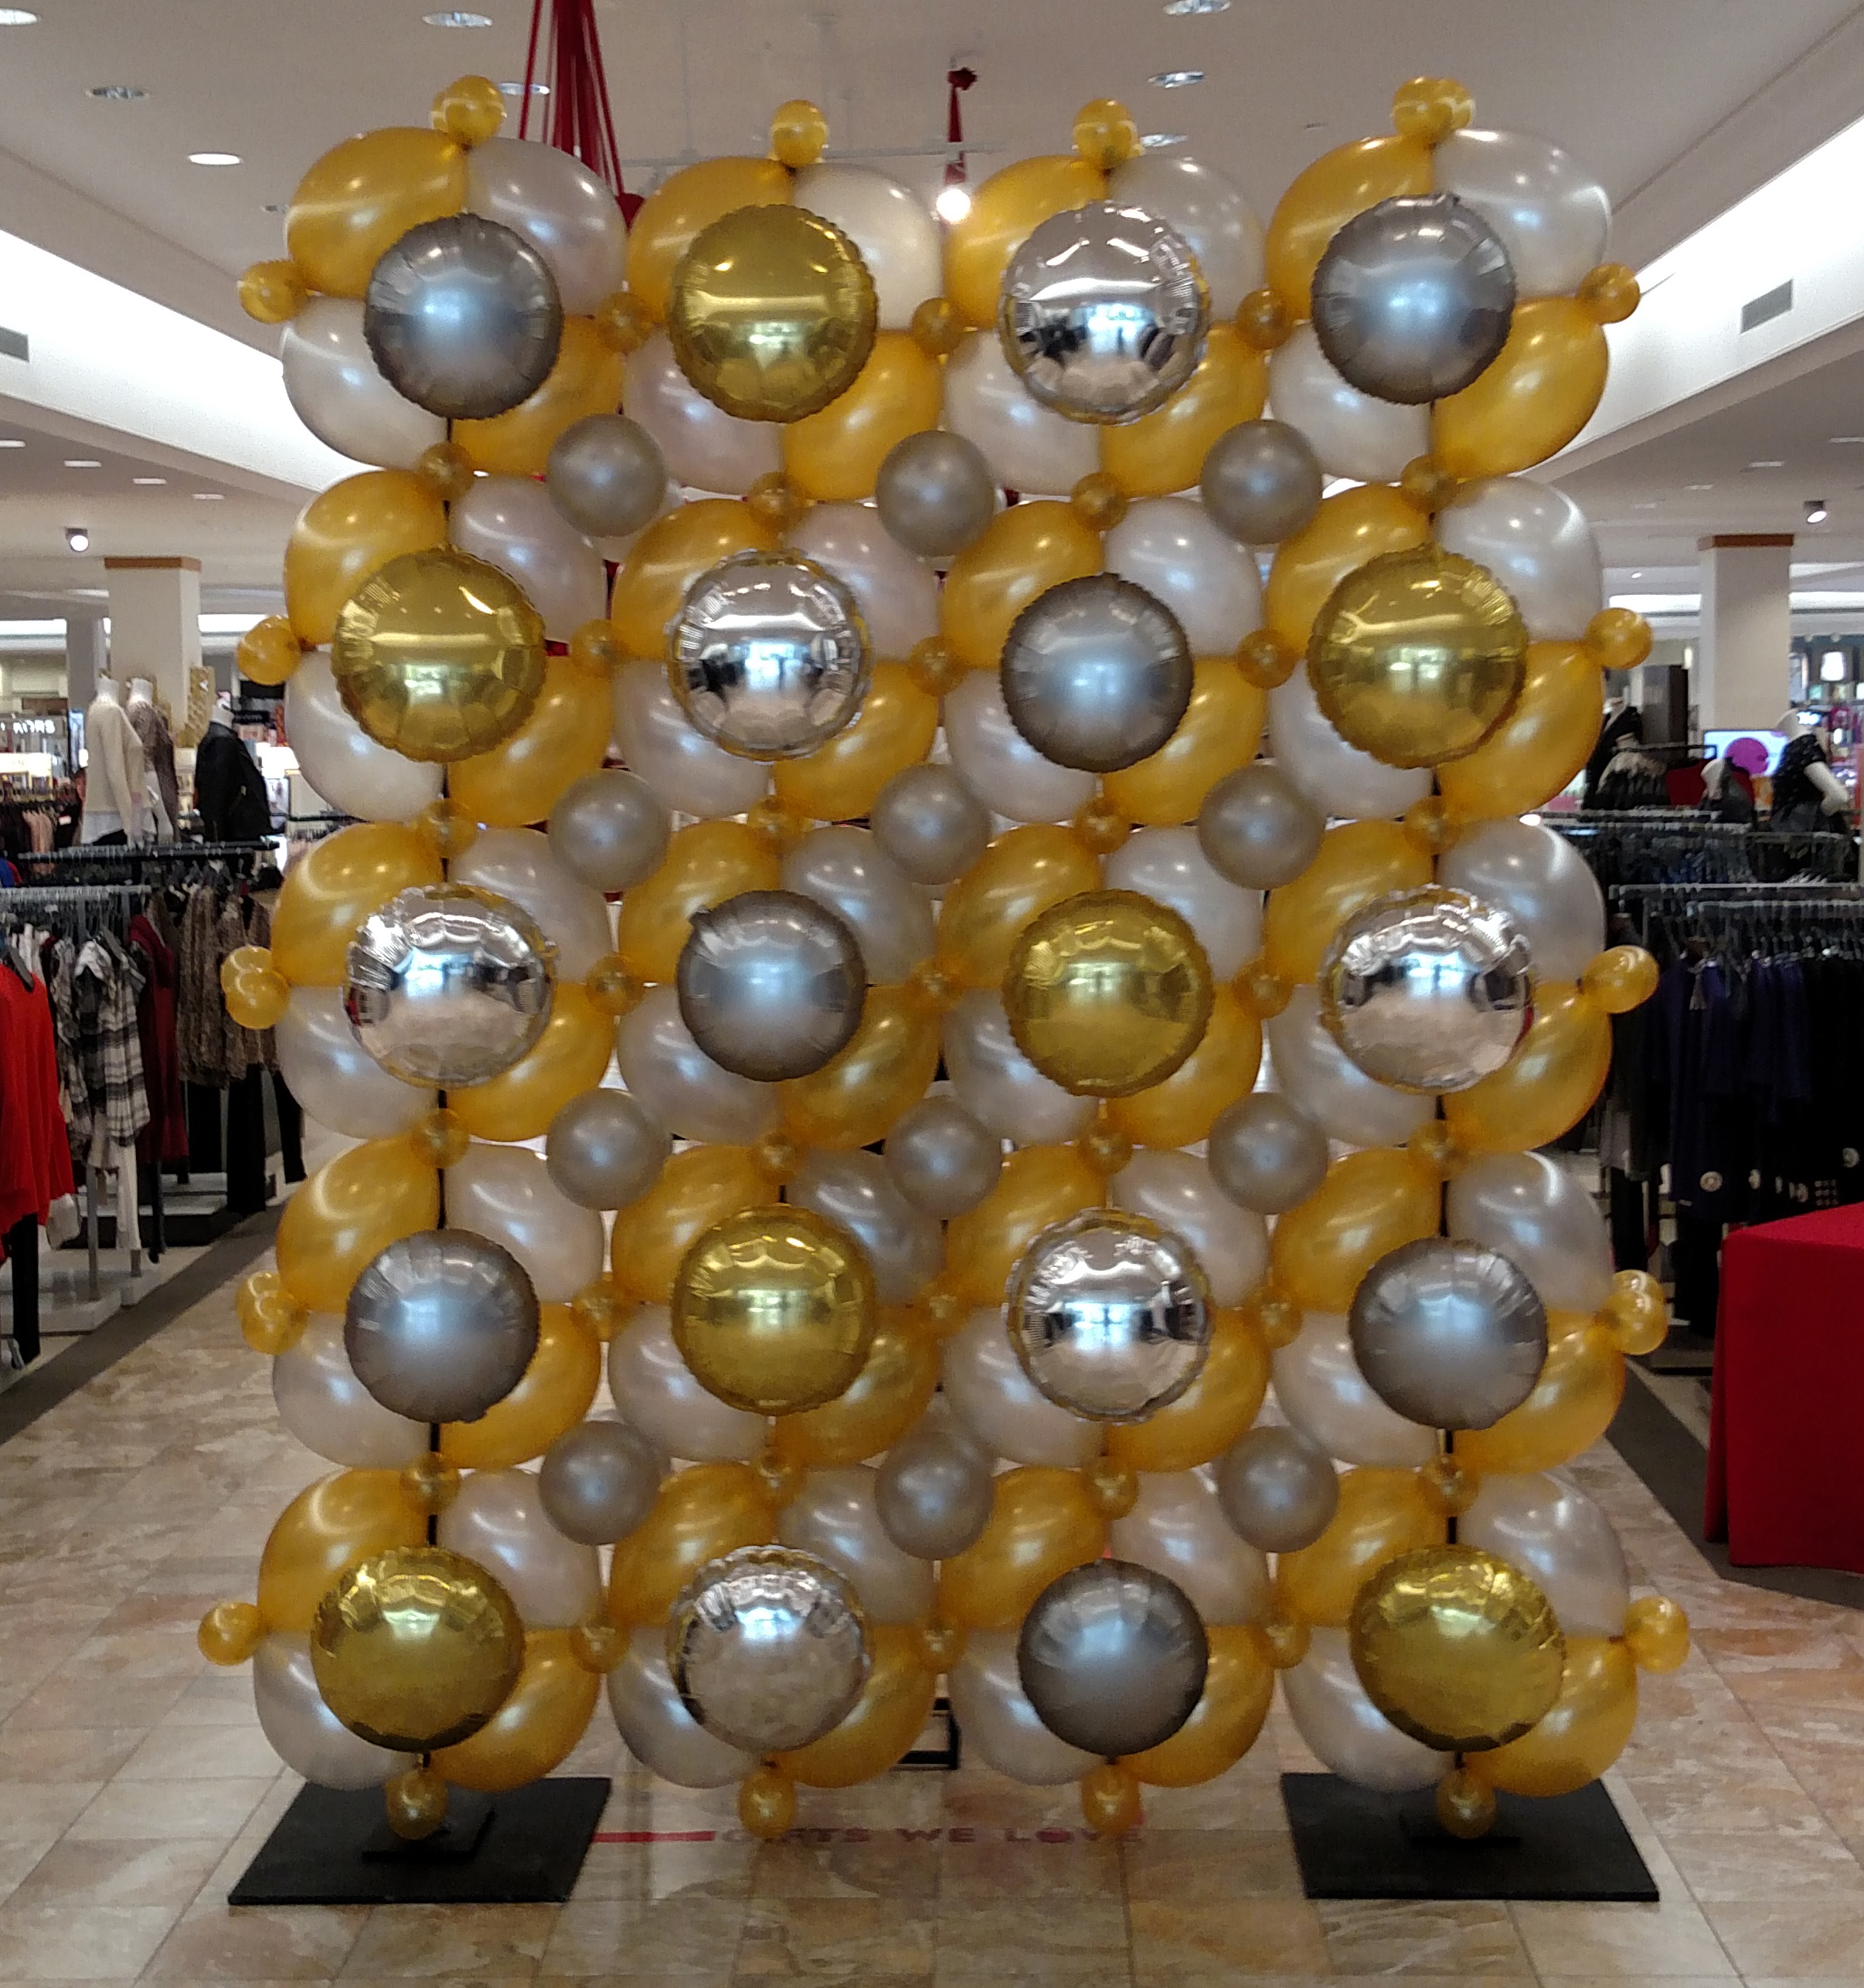 Macy's Silver, Gold, and Platinum Balloon Wall